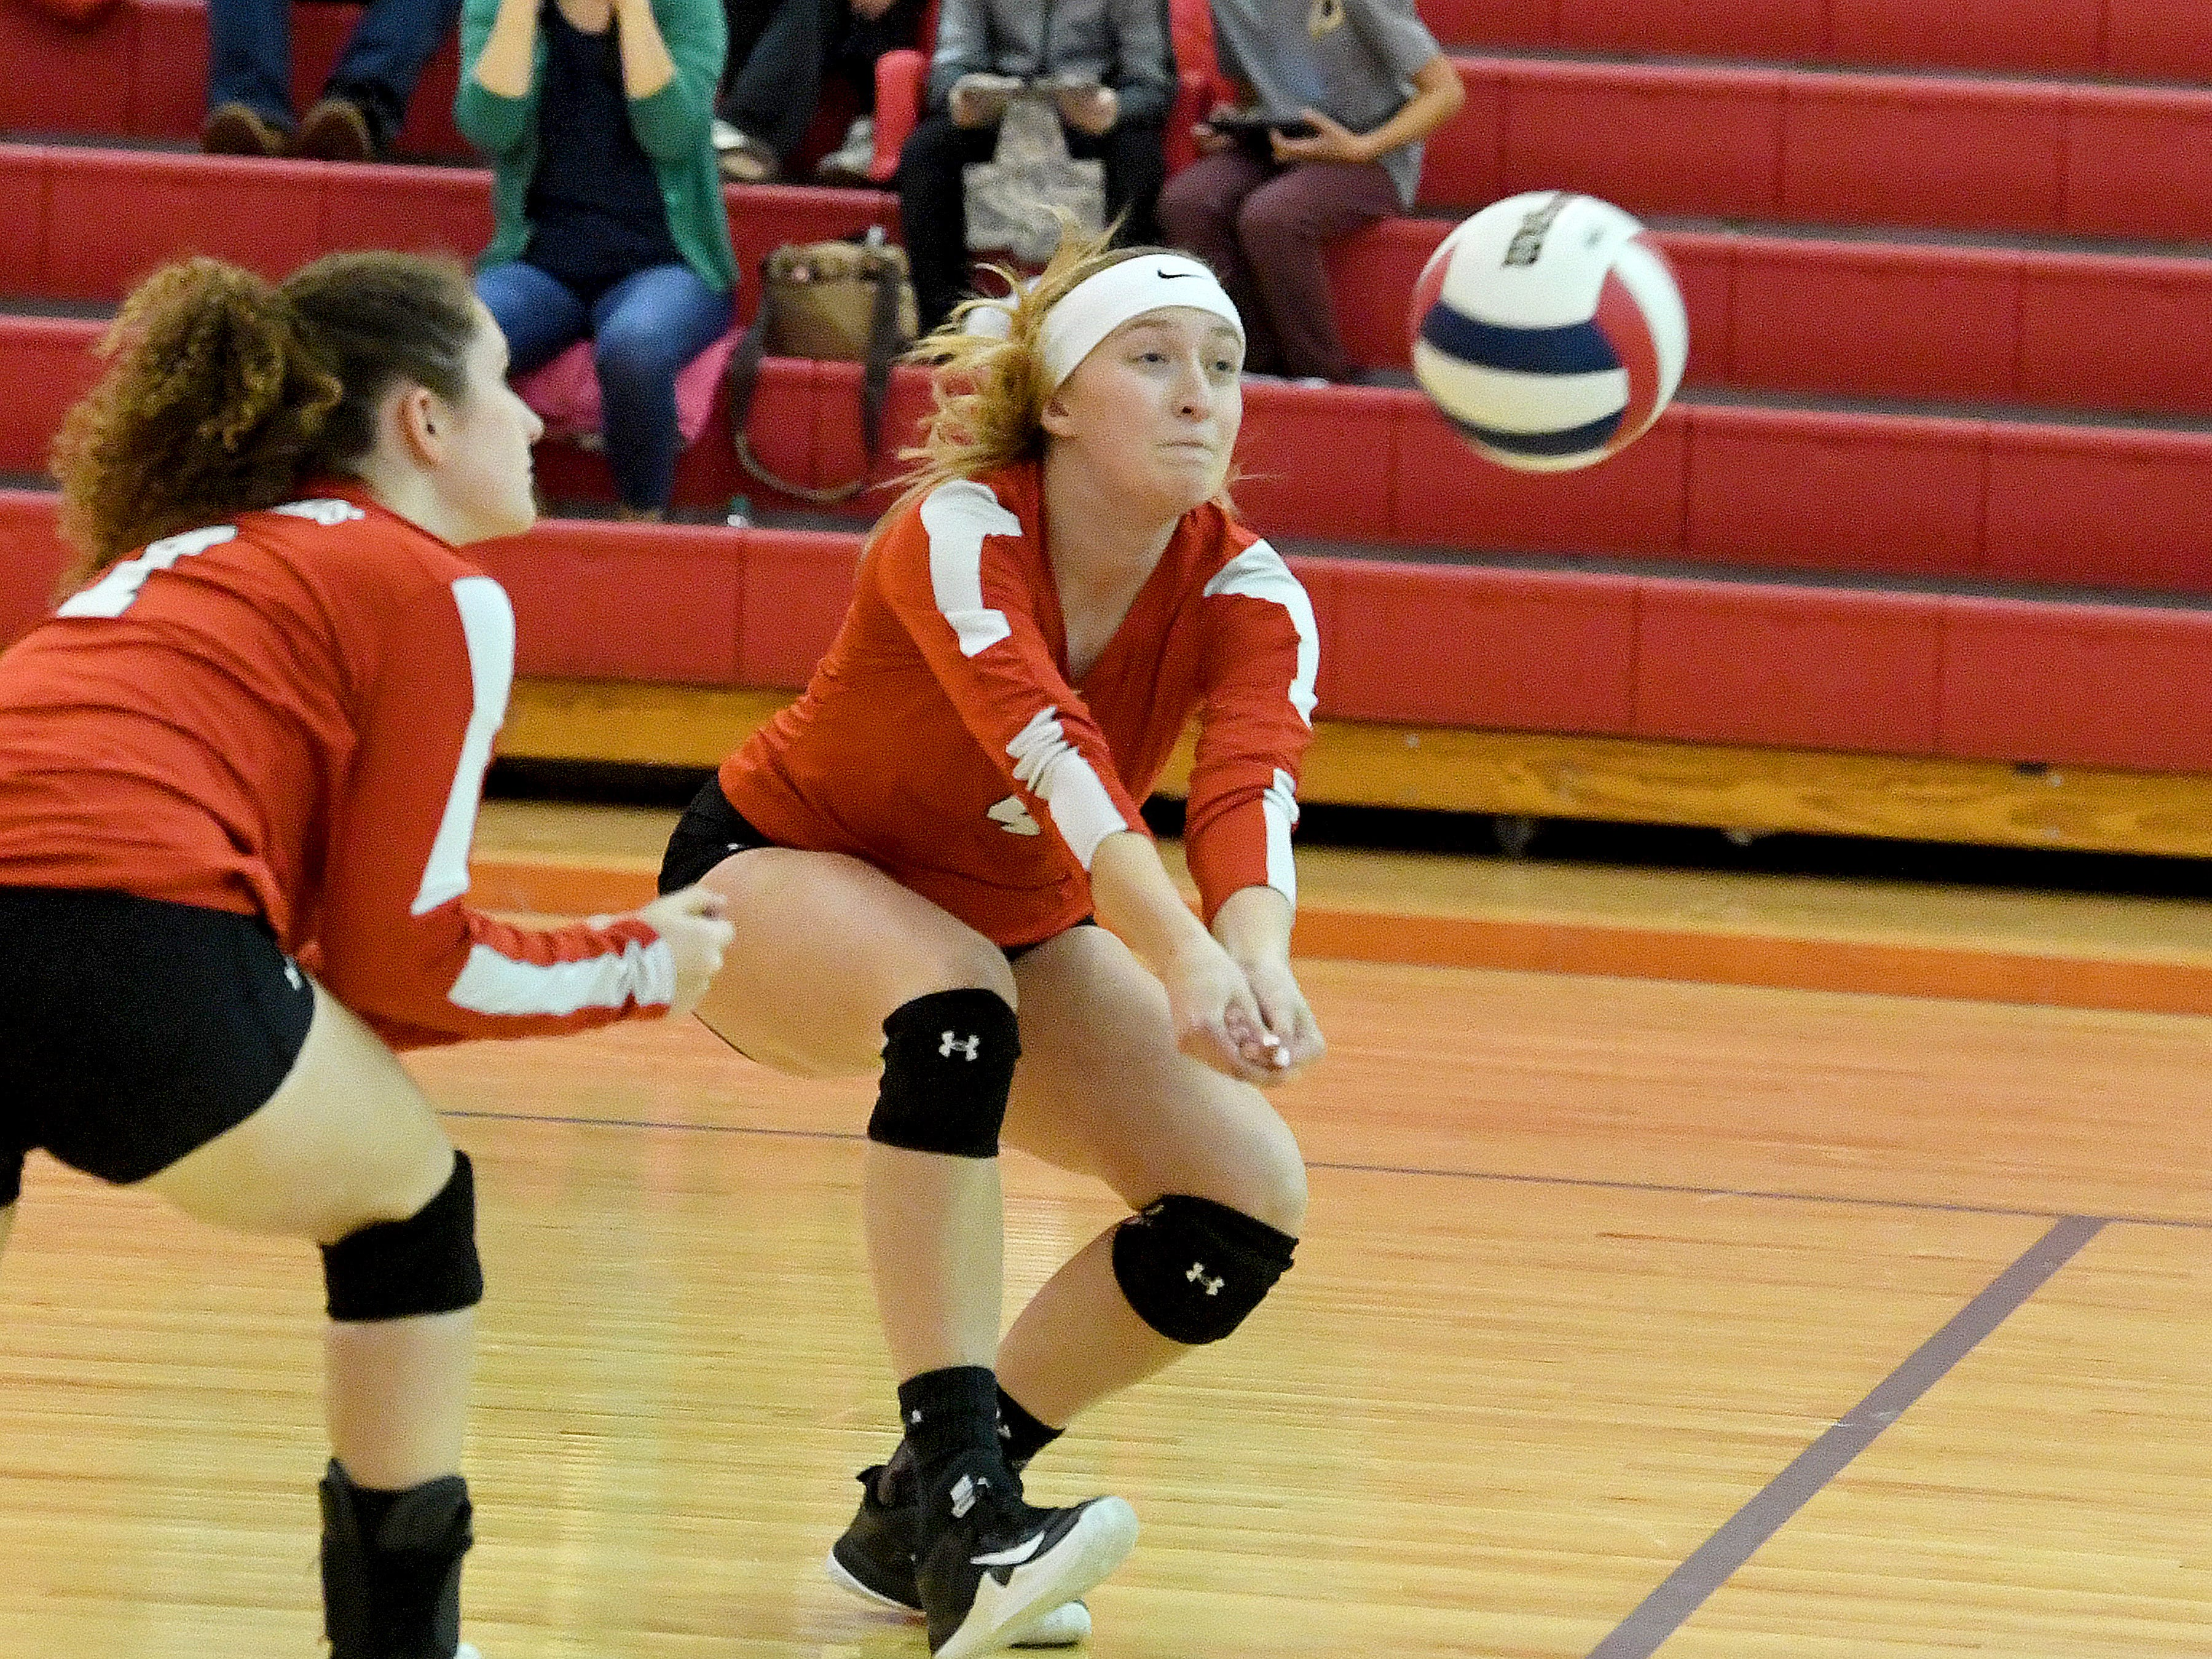 Riverheads' Emma Tomlinson drops to the side and forward a bit to bump the ball during a Region 1B quarterfinal match, played in Greenville on Thursday, Nov. 1, 2018.